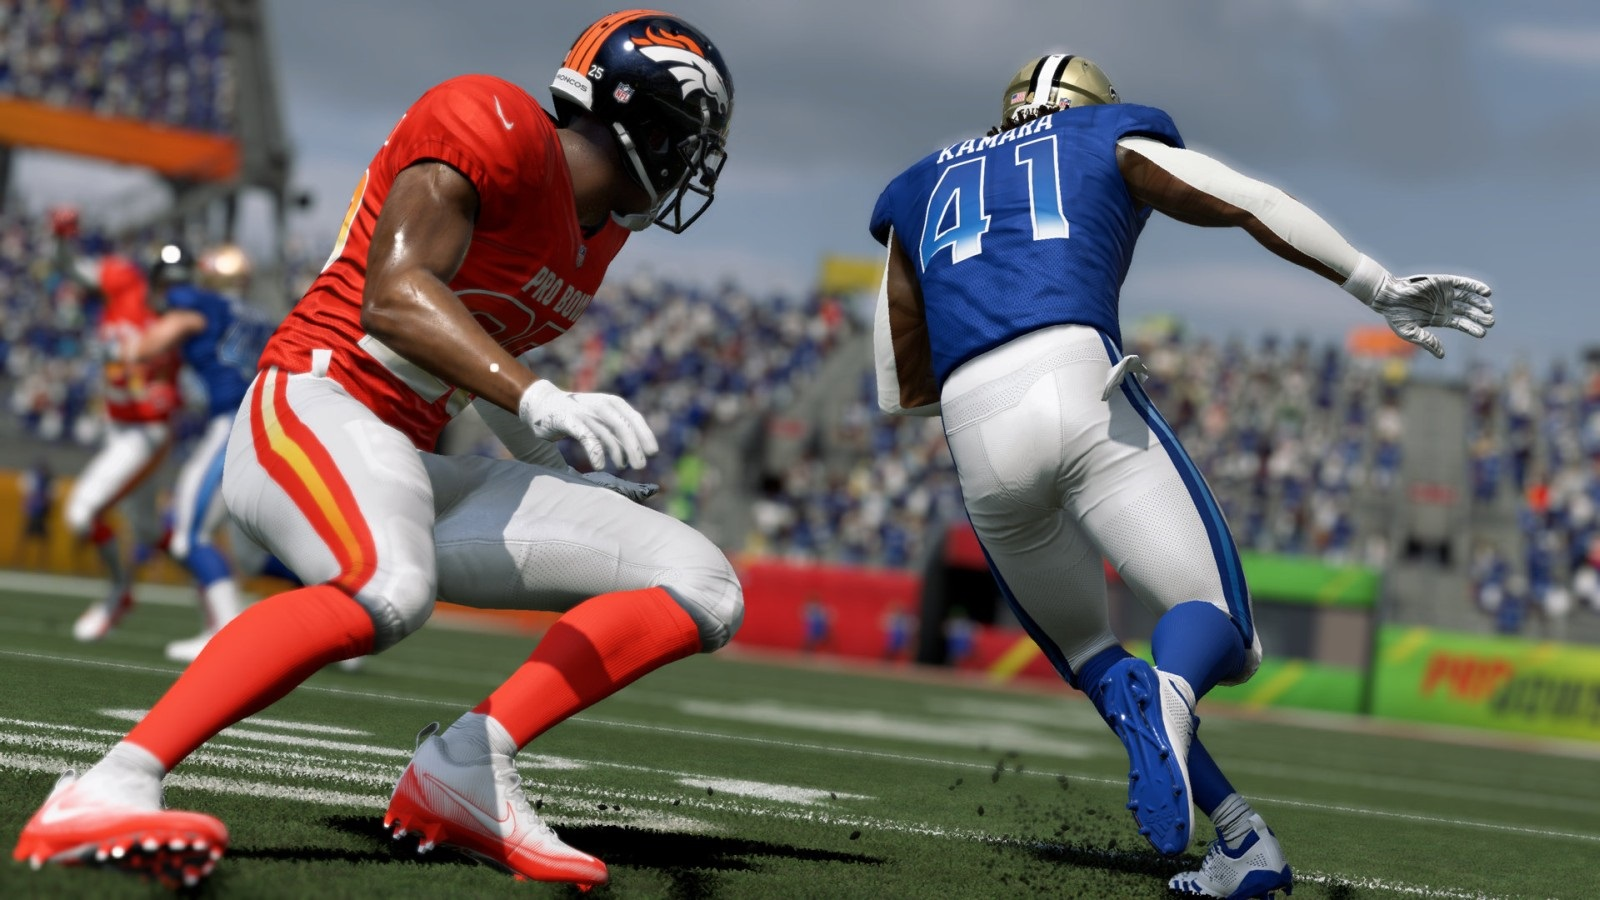 Madden NFL 20; screenshot: únik